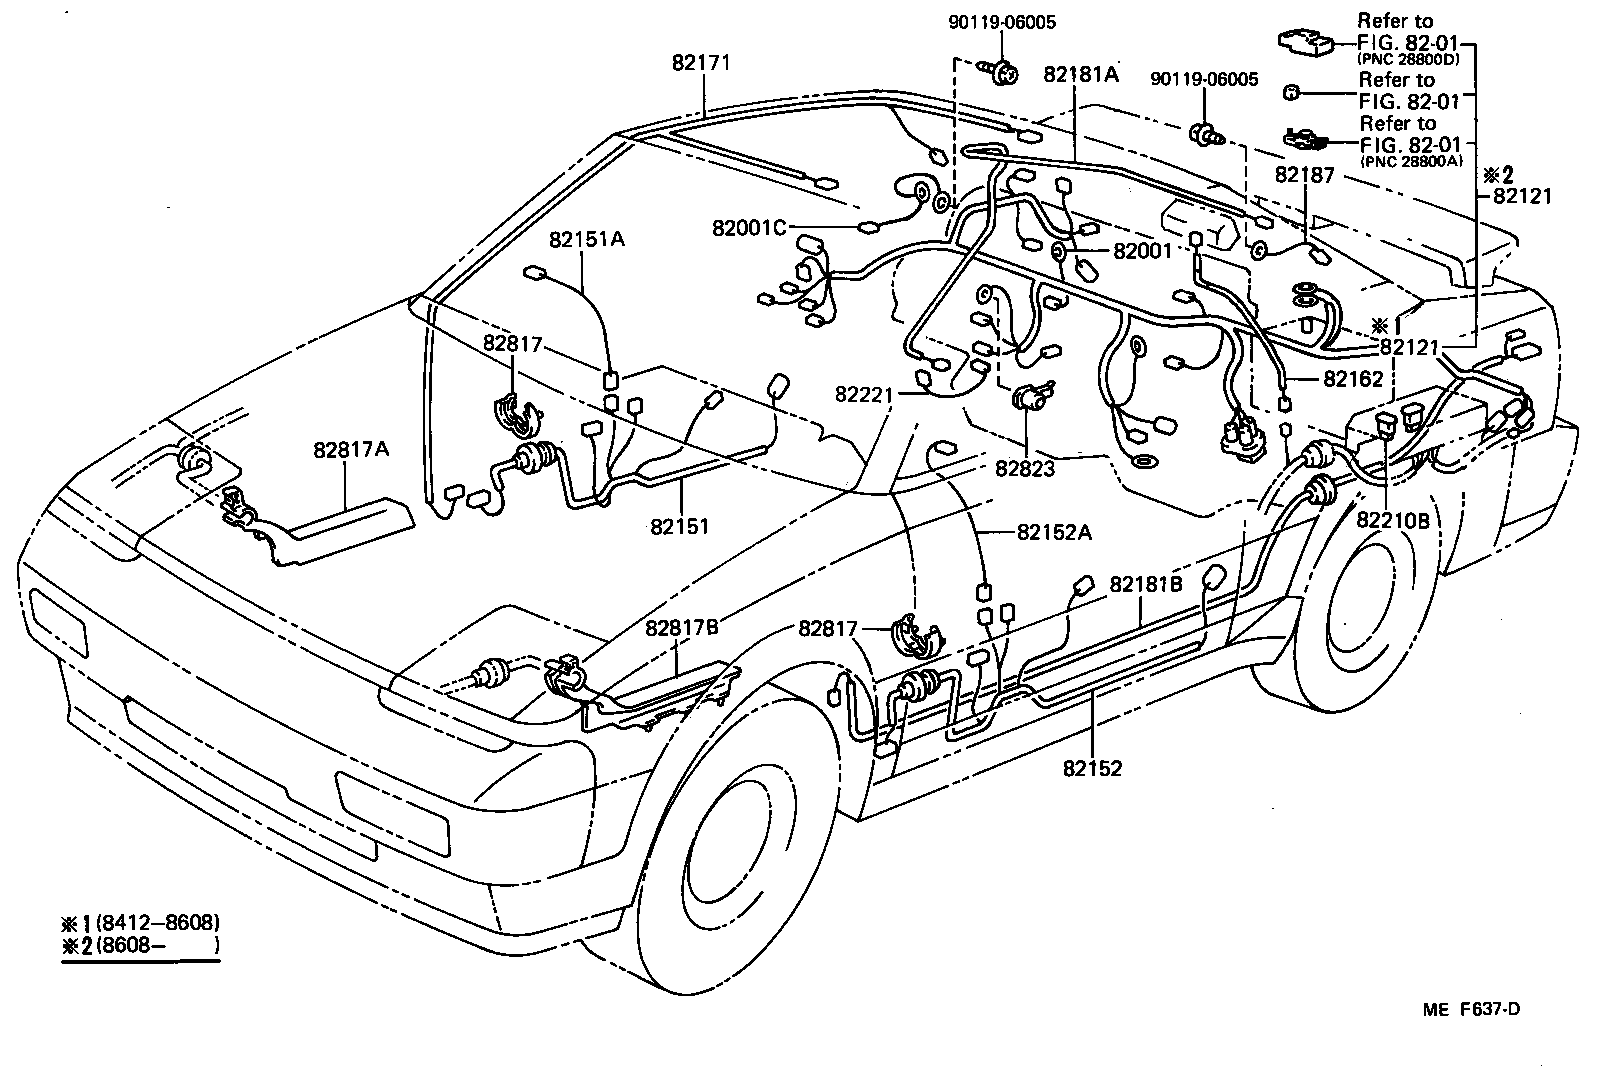 diagram] 1994 toyota mr2 wiring diagram original full version hd quality  diagram original - firesafetysource.ssaandco.it  firesafetysource.ssaandco.it